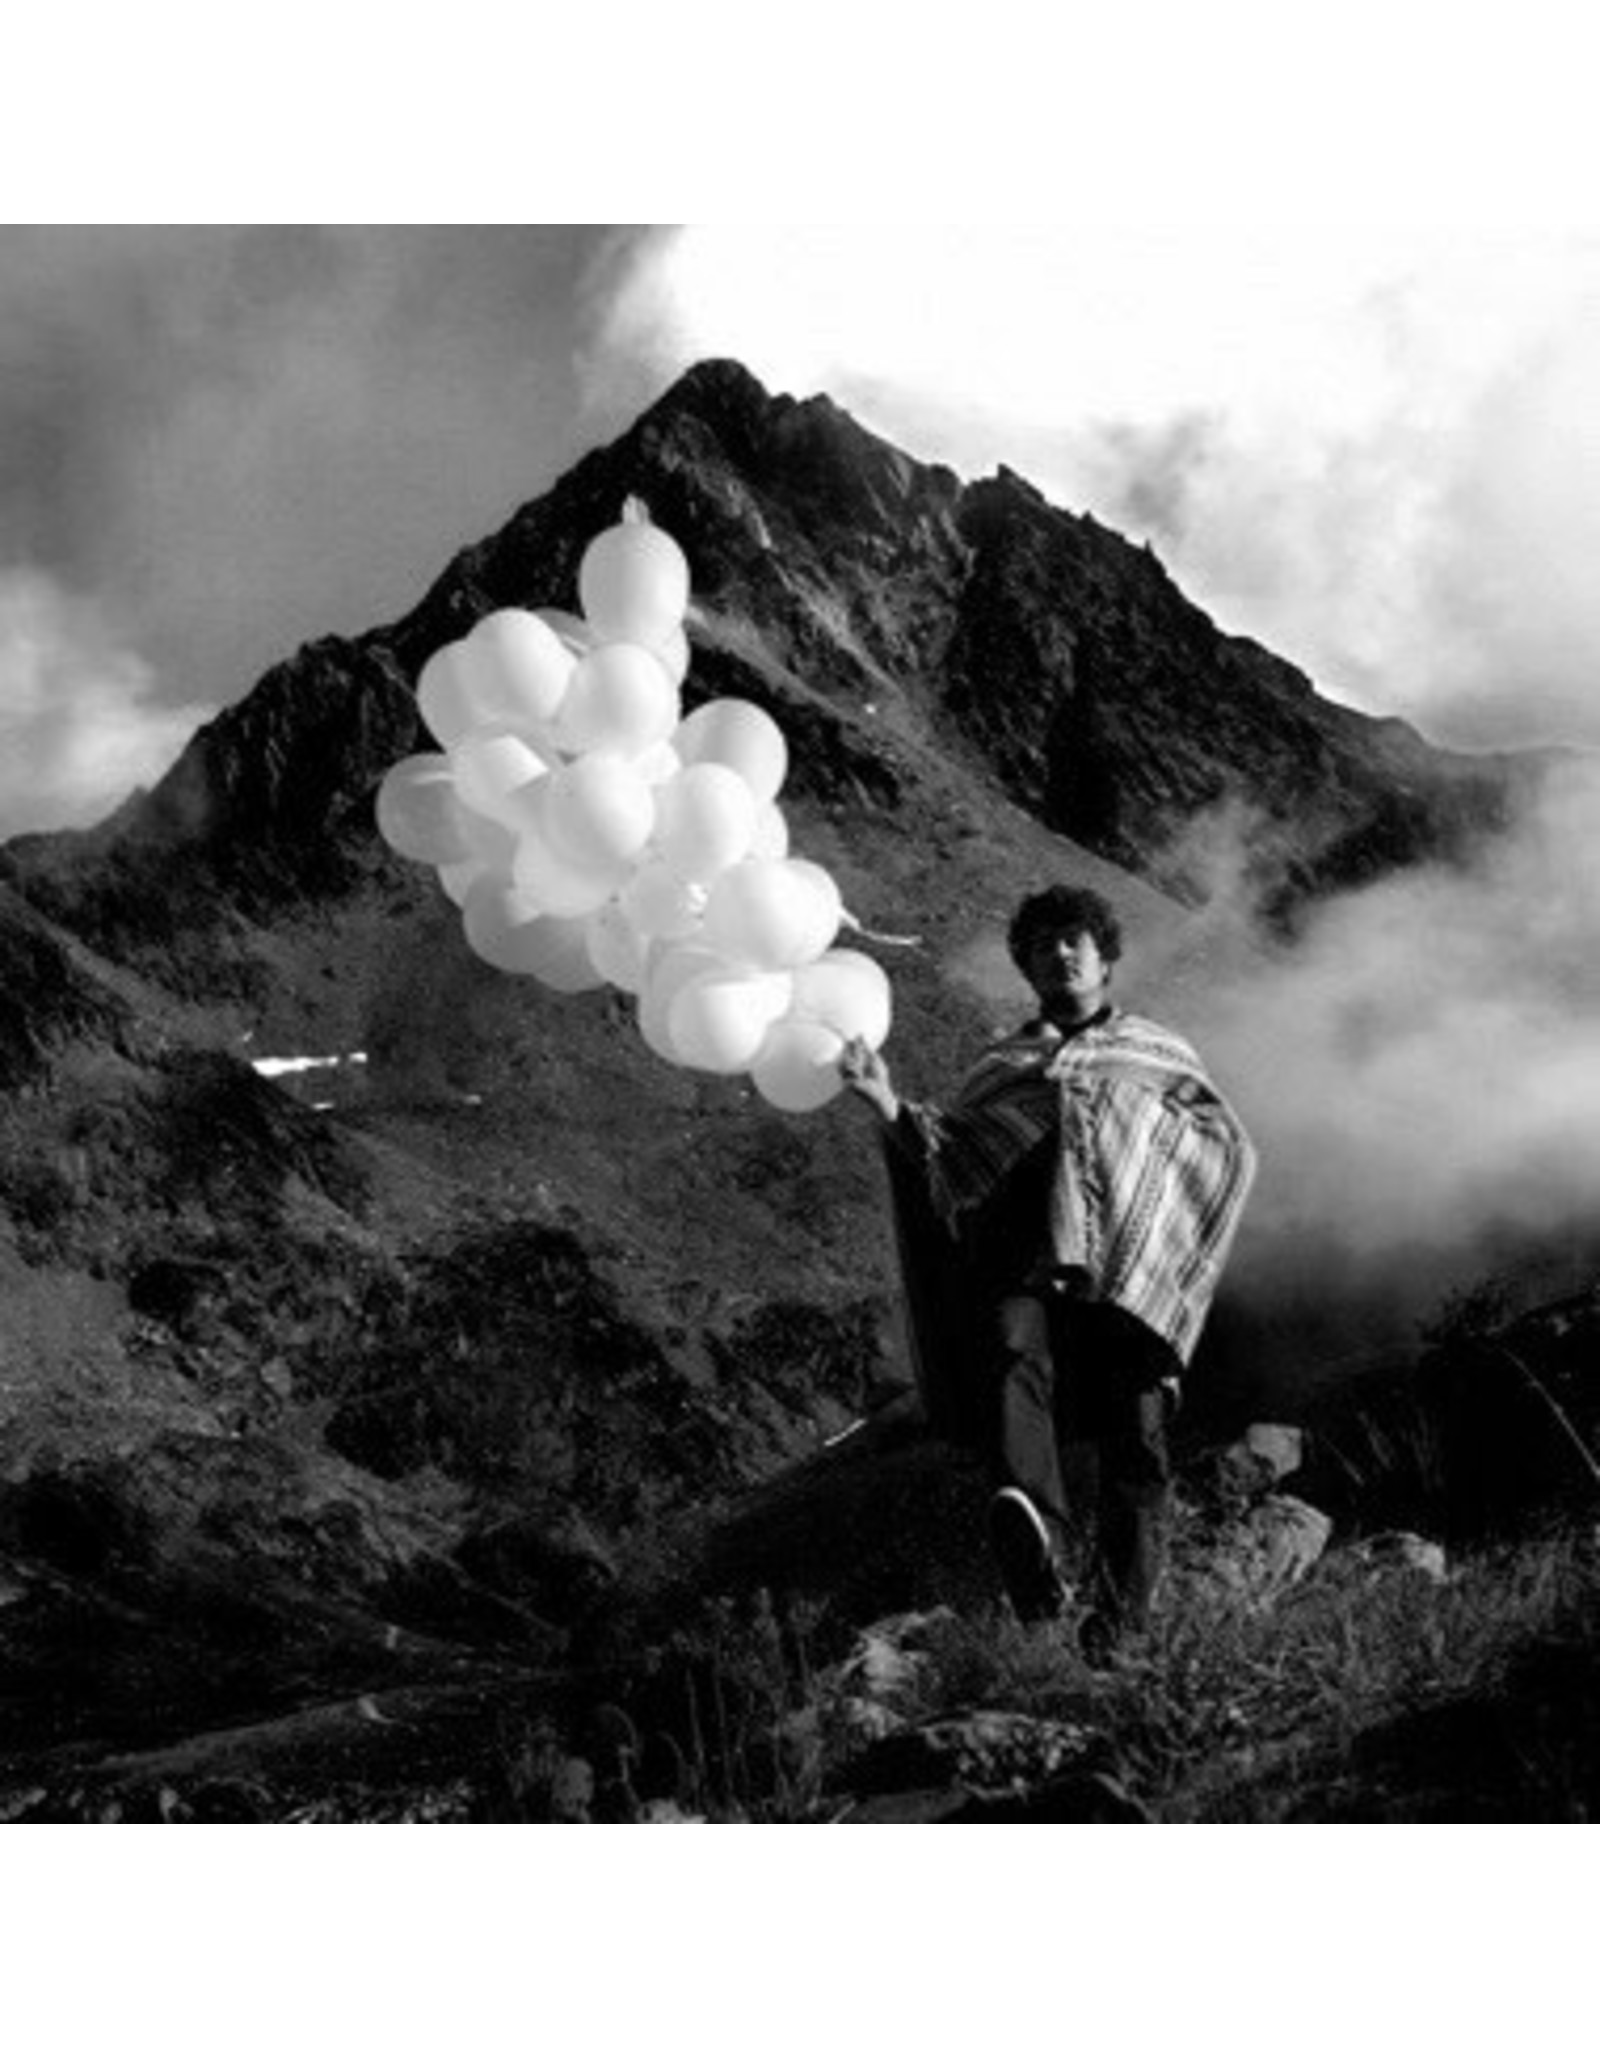 New Vinyl Richard Swift - Dressed Up For The Letdown (SC 25th Anniversary, Colored) LP